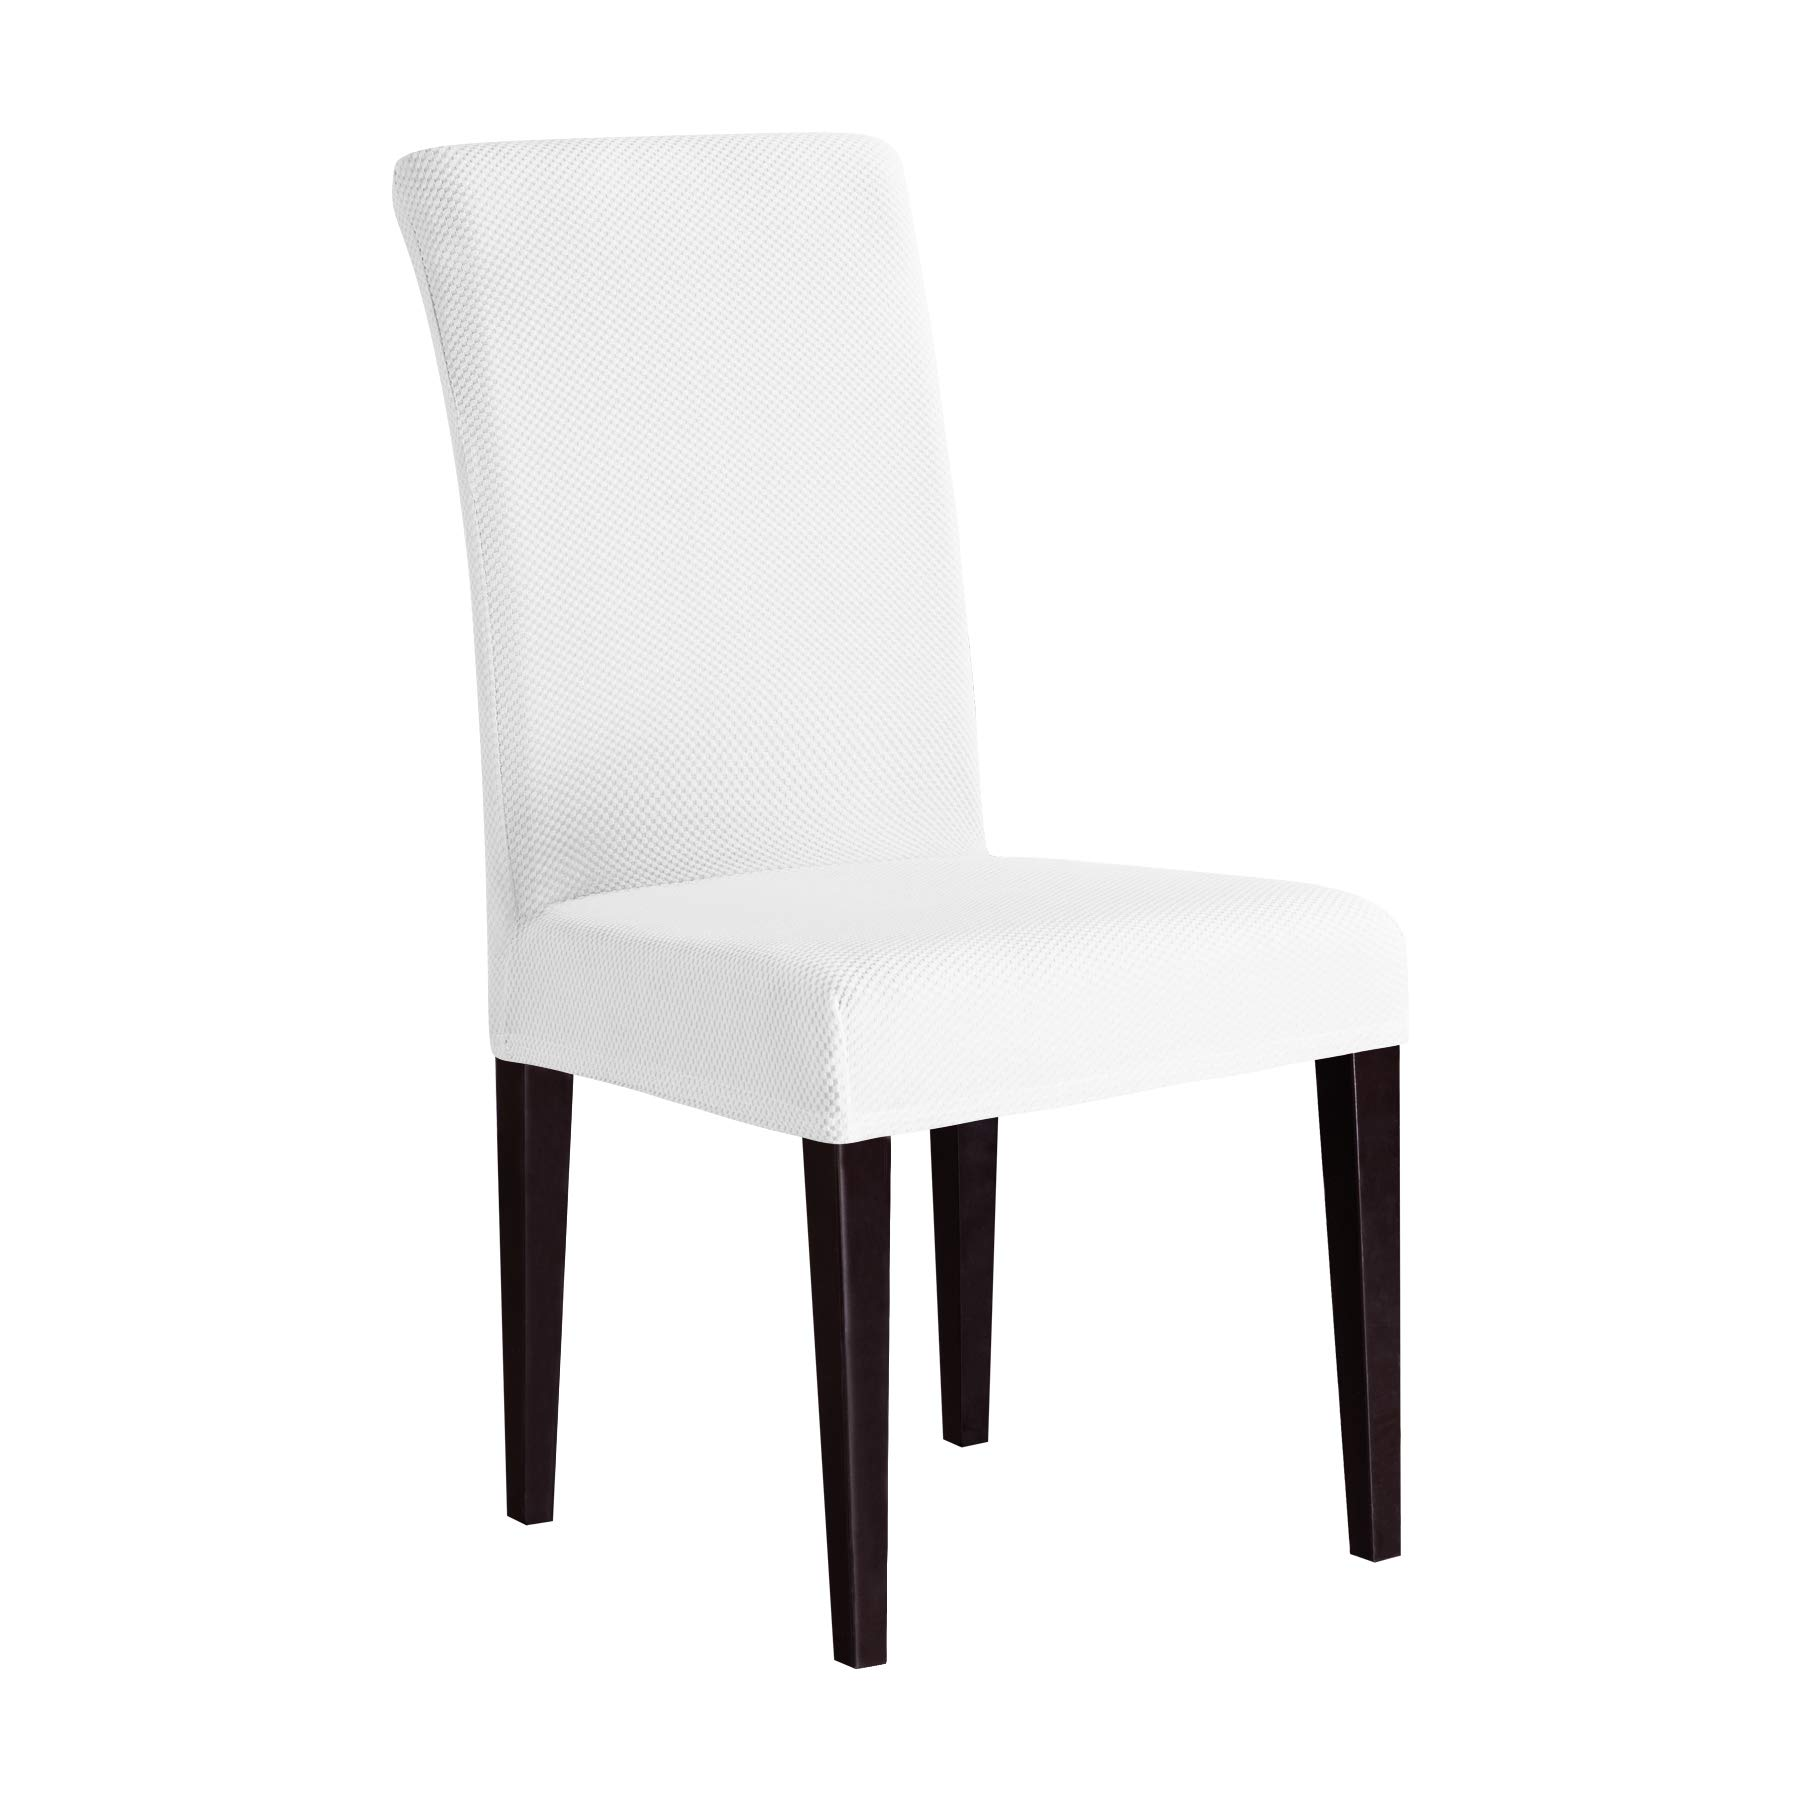 Subrtex Dining Room Slipcovers Sets Stretch Removable Chair Furniture Protect Washable Elastic Seat Cover (6, White Knit) by Subrtex